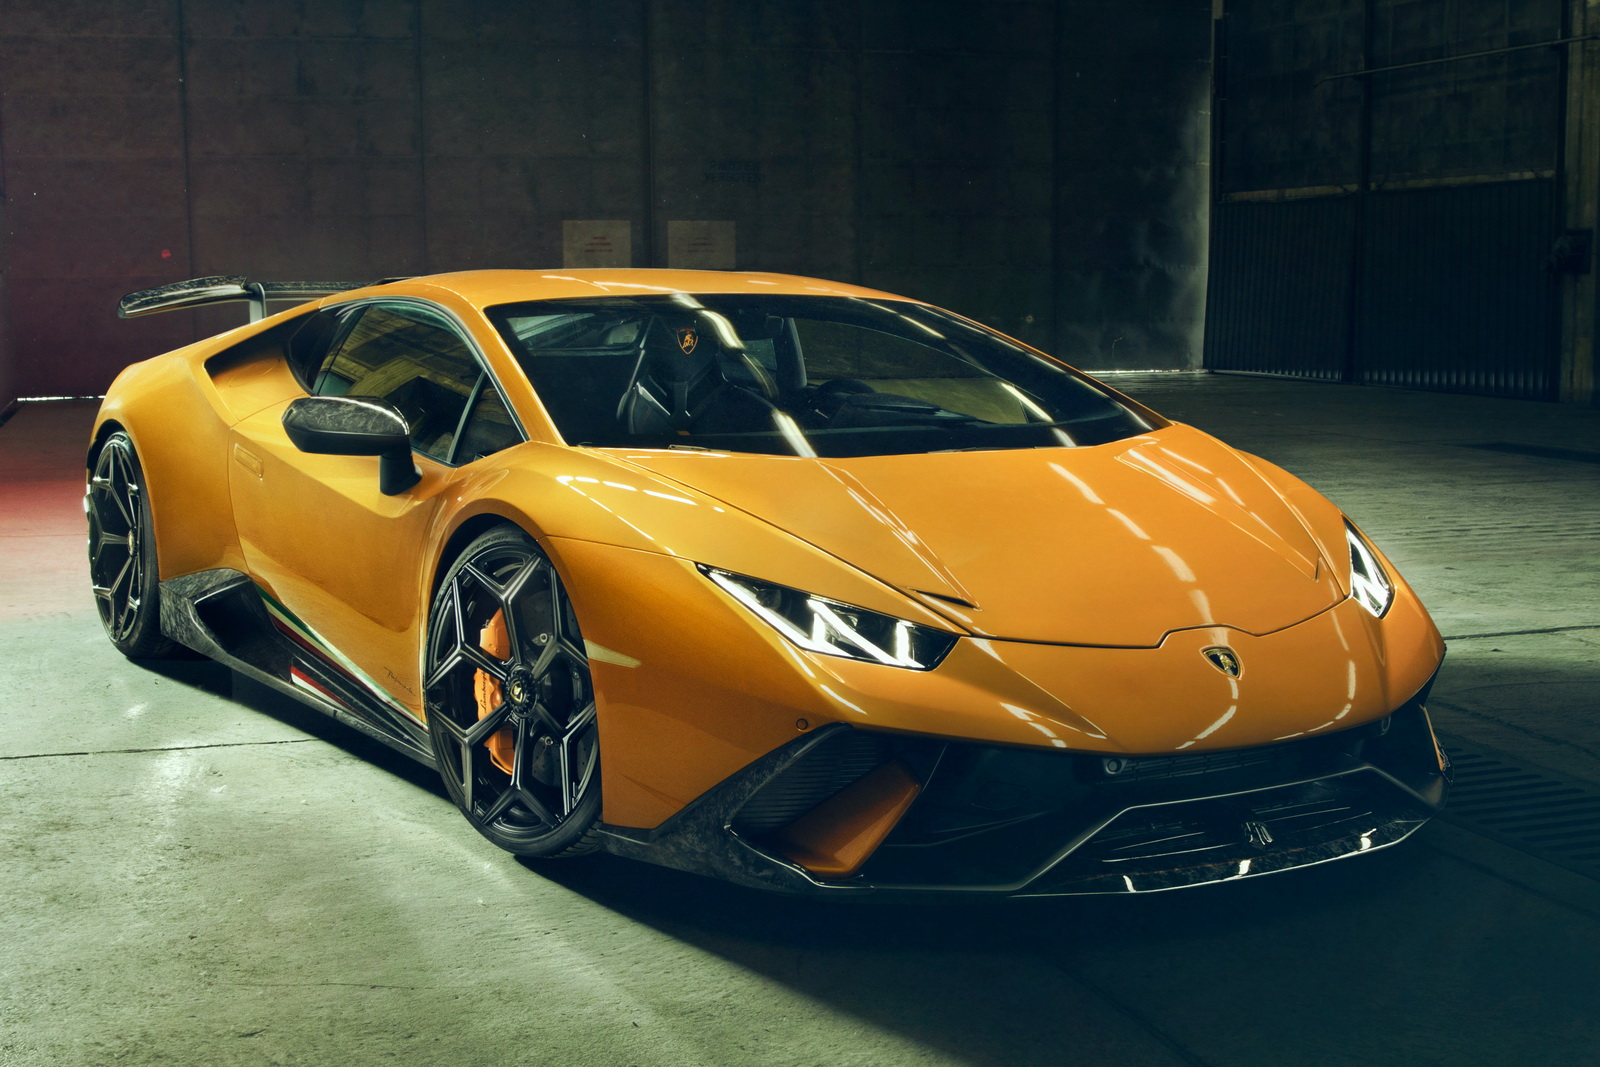 novitec reveals lamborghini huracan performante upgrades - gtspirit